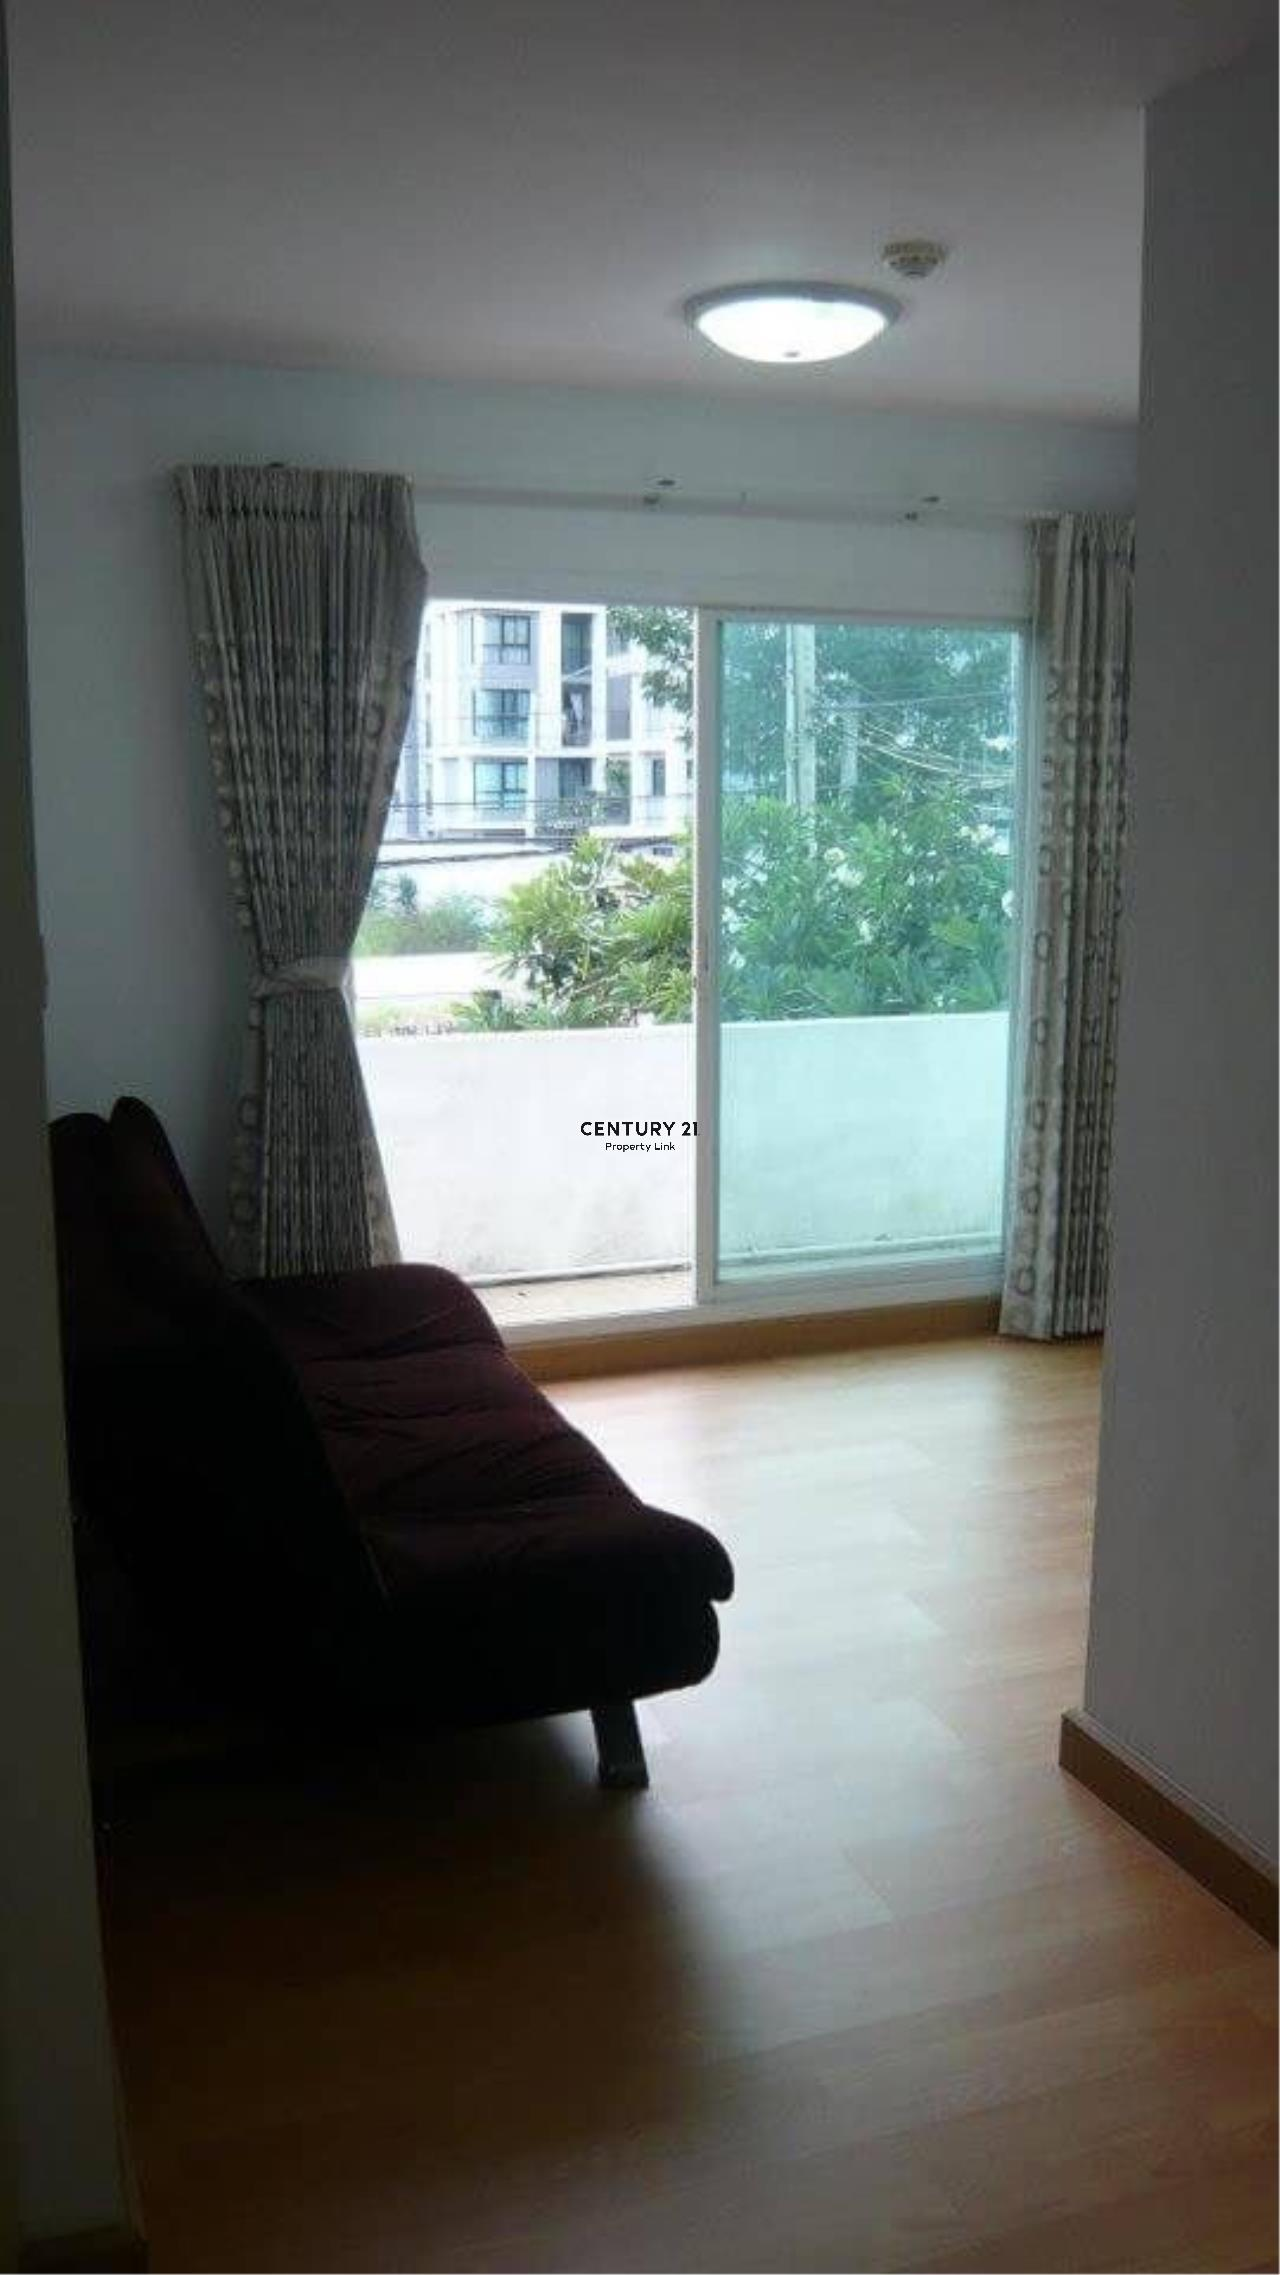 Century21 Property Link Agency's 39-CC-61545 Chateau In Town Ratchada 17 Near Huai Khwang MRT Ratchadapisek Road Room For Rent 2 Bedroom Rental 18,000THB / month  6